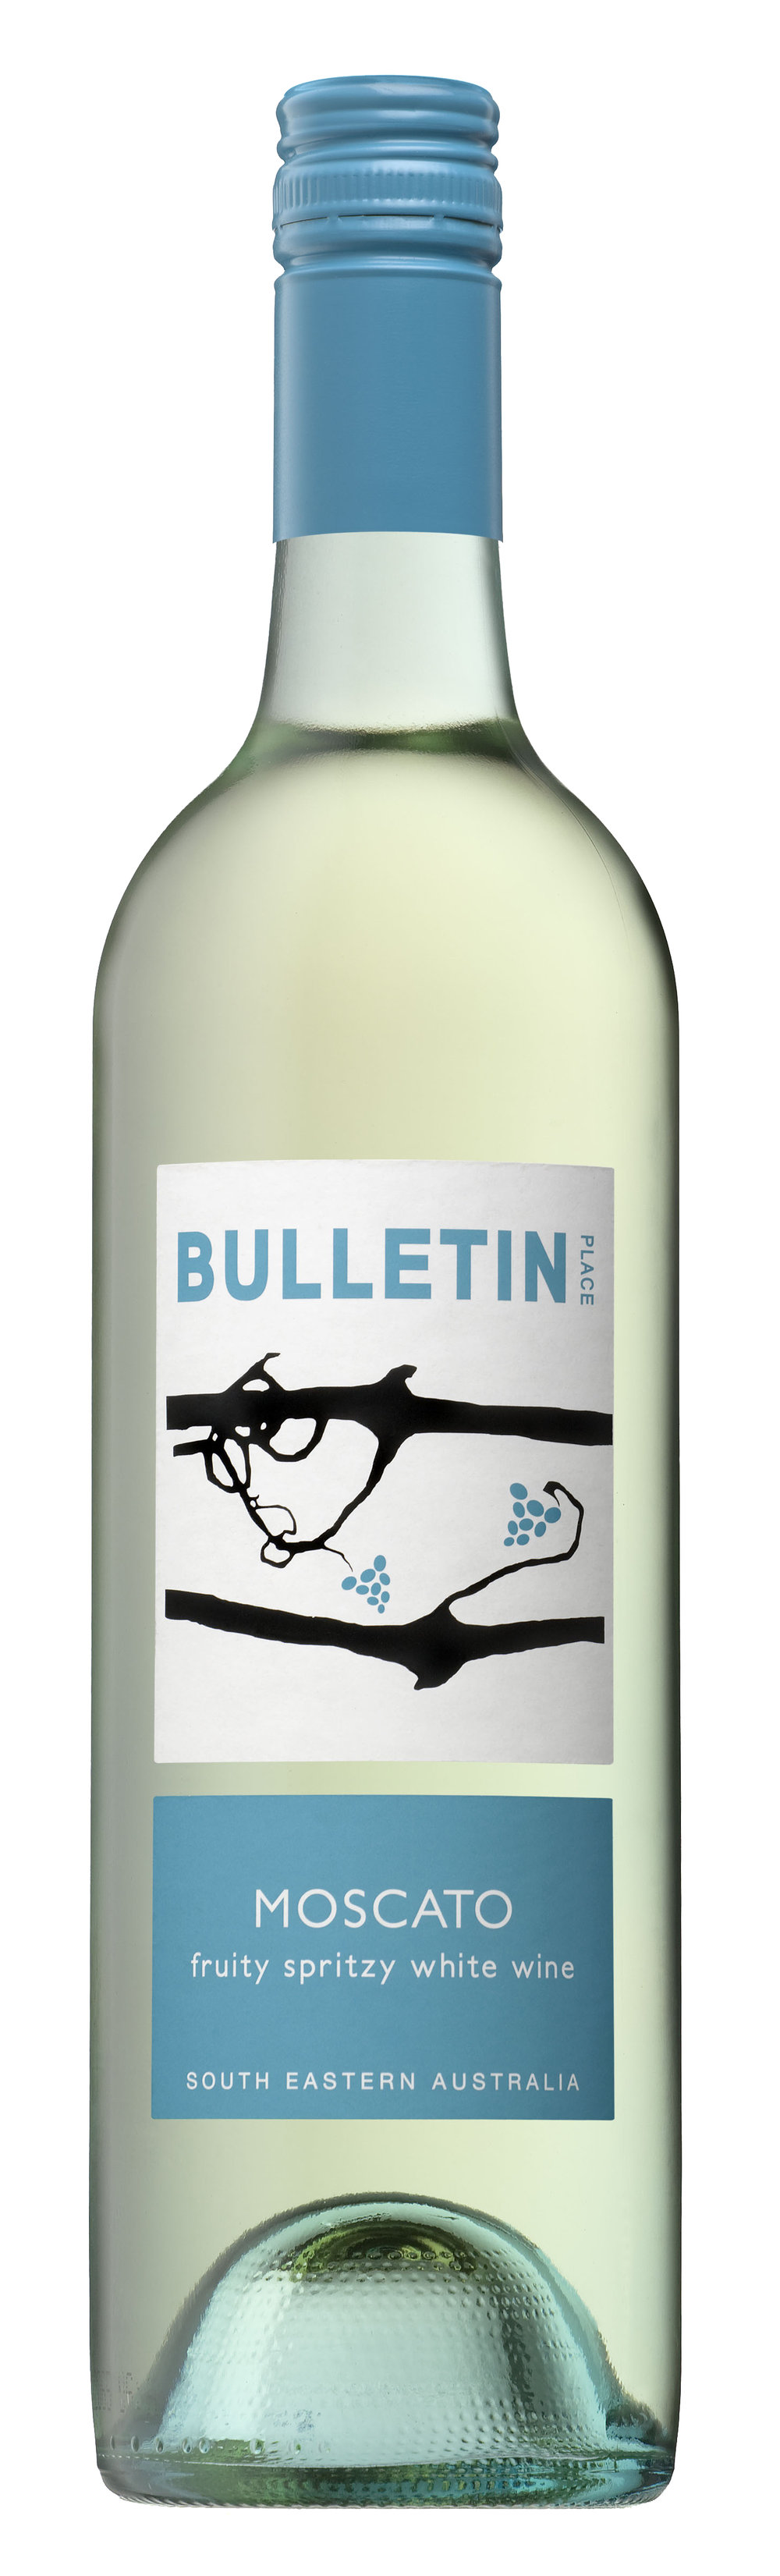 Bulletin Place Moscato Bottle.jpg